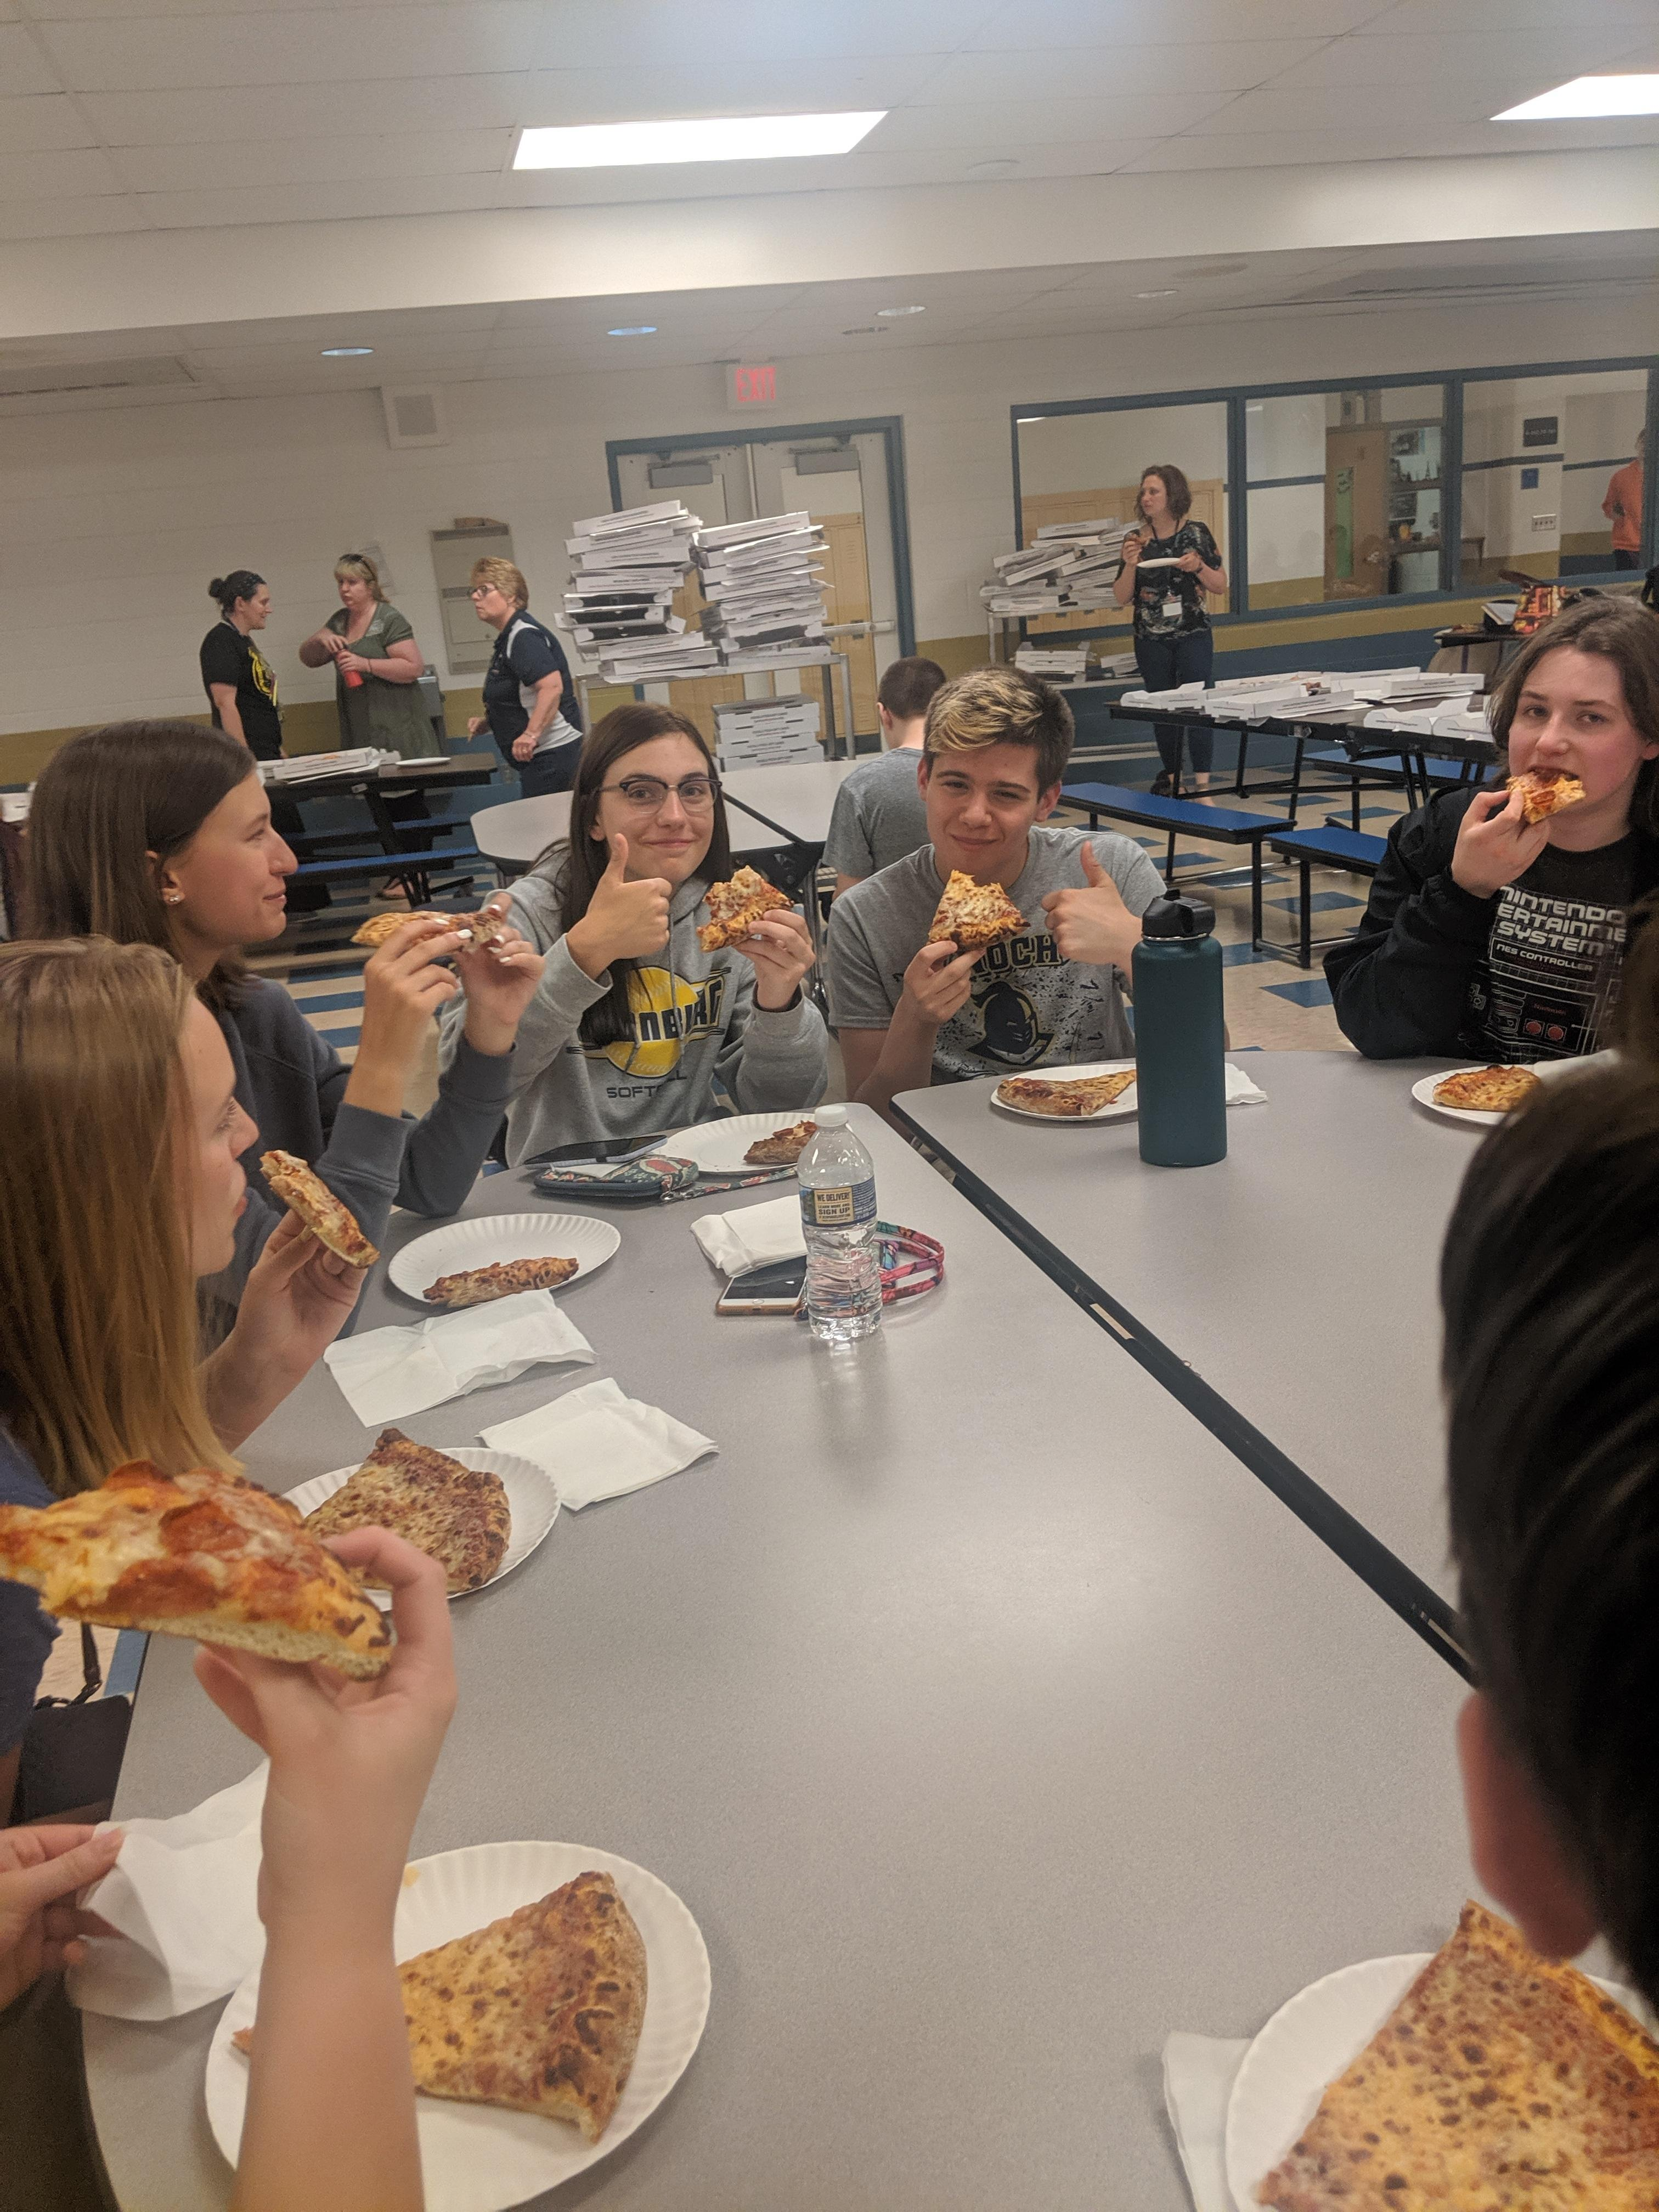 Students eating pizza.